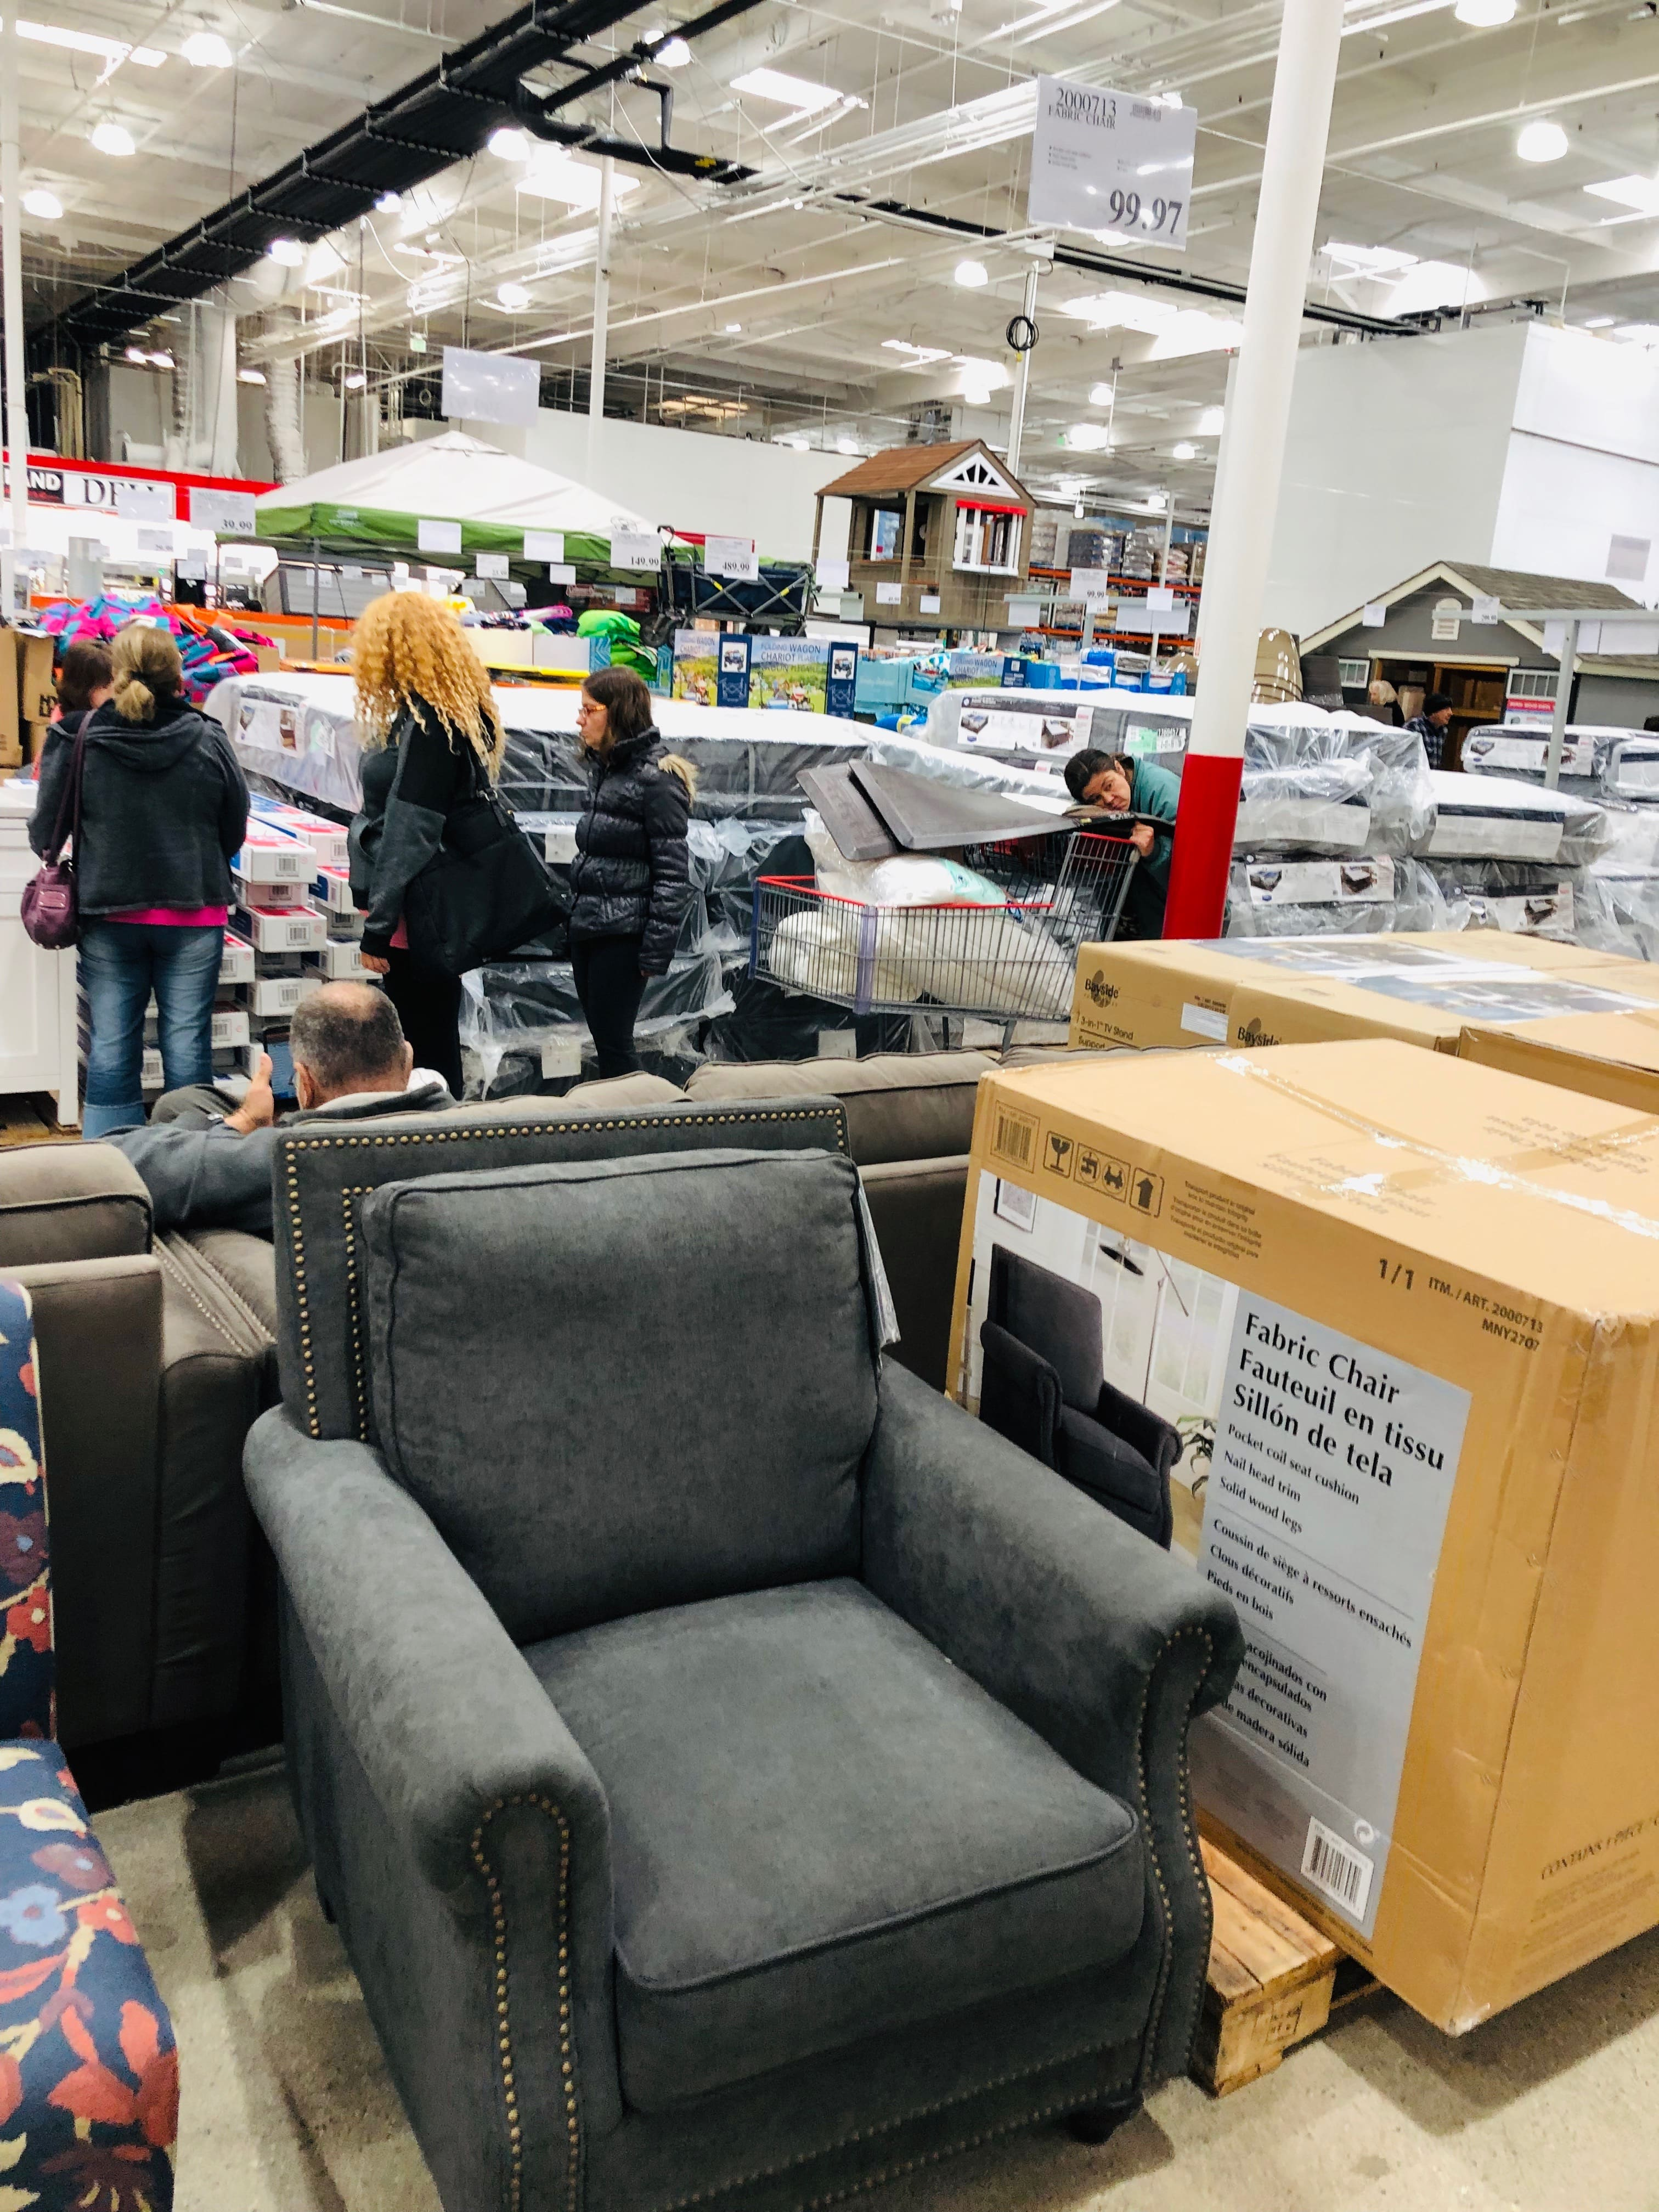 Costco In-Store  furniture on clearance (leather couches, dining table, dressers, chairs) starting $49.97 YMMV $0.97